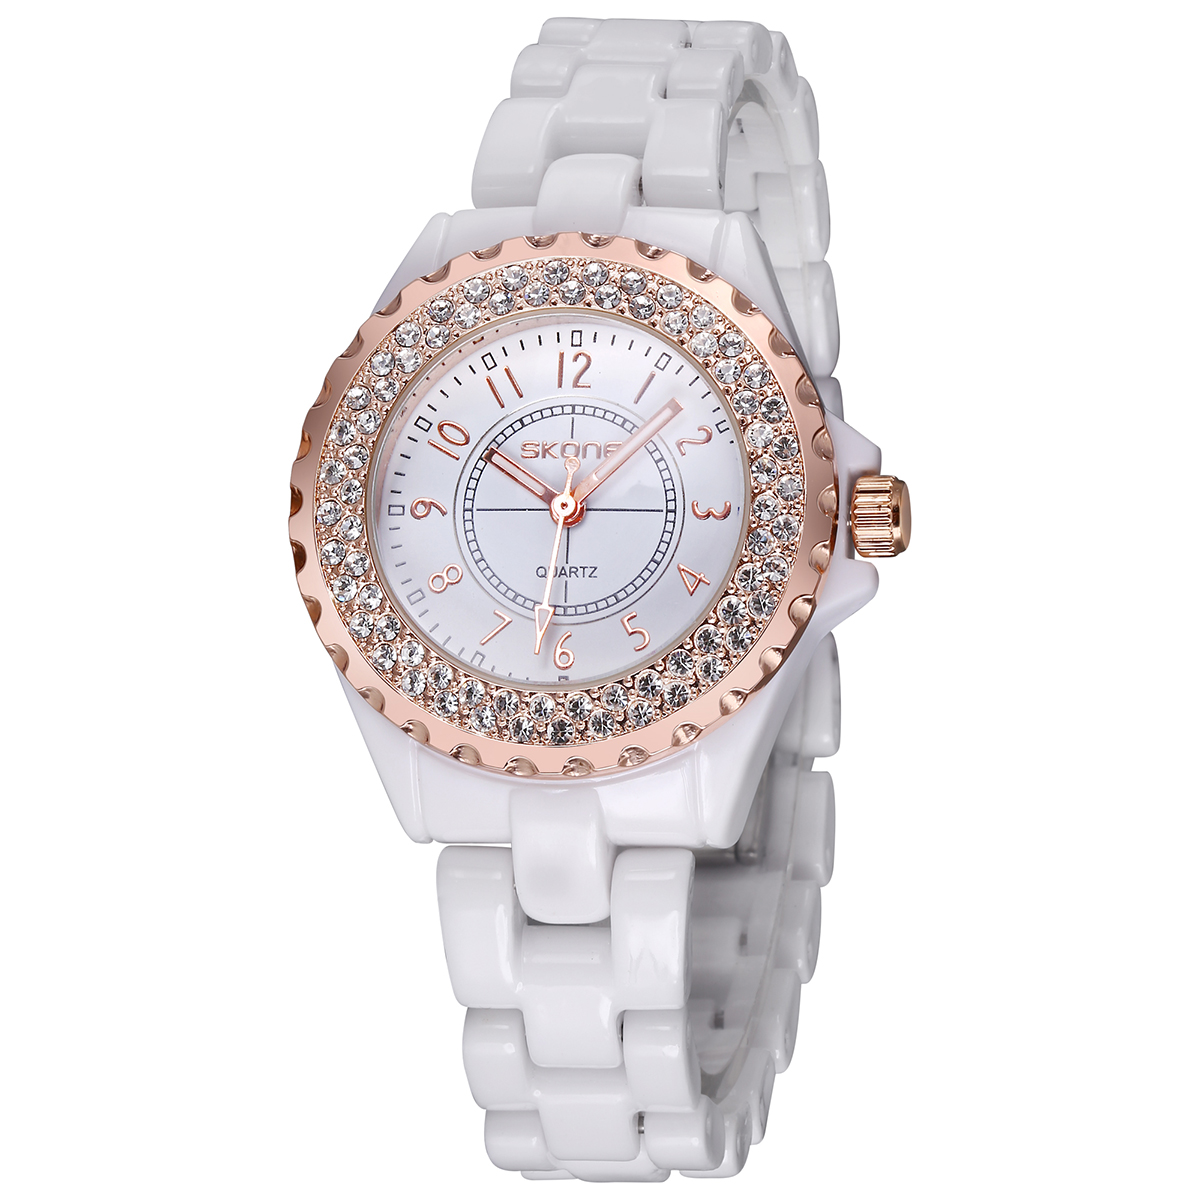 steel silver relogio vrouwen cole horloges watches strap taylor fashion lady item watch brand rhinestone stainless women dress white s from quartz in feminino